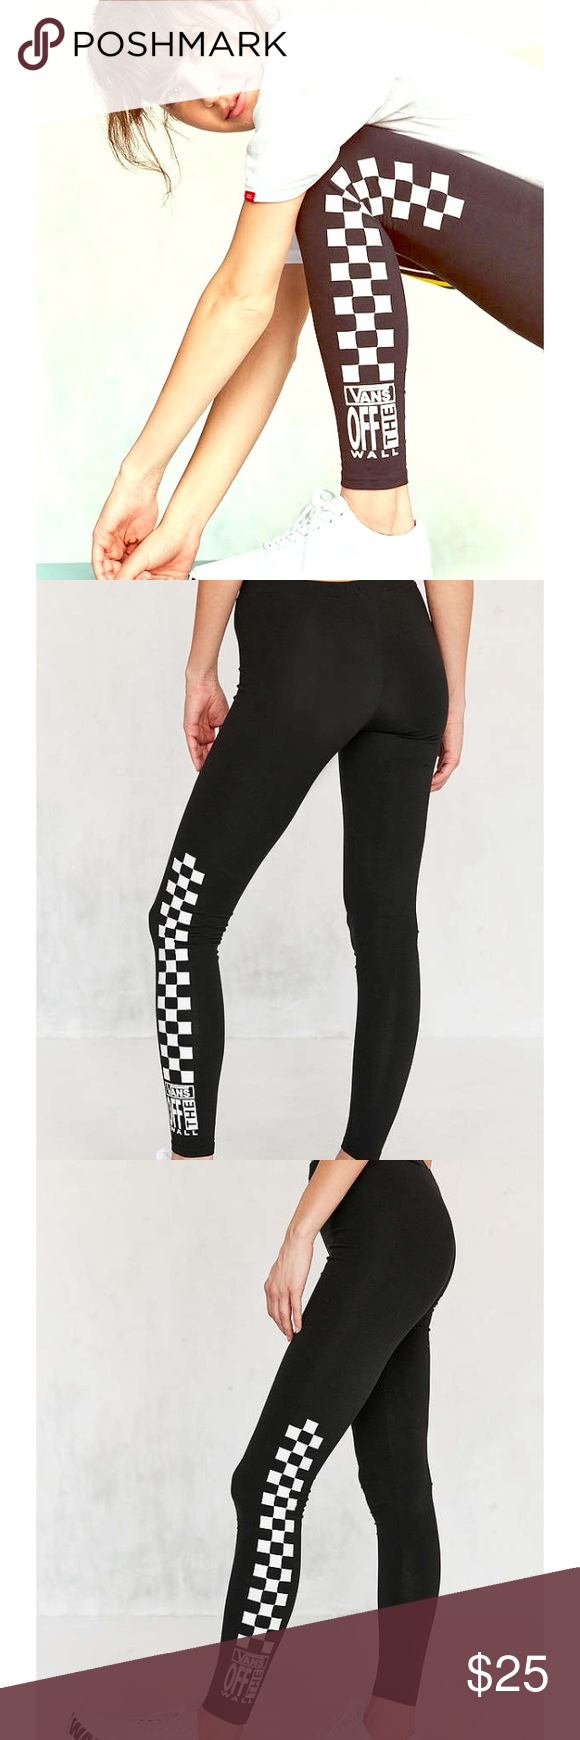 df58b435a0e02 Vans Old Skool Checkered leggings SZ XS These are an Urban Outfitters  exclusive just purchased 2 weeks ago 🖤 them! Vans Pants Leggings